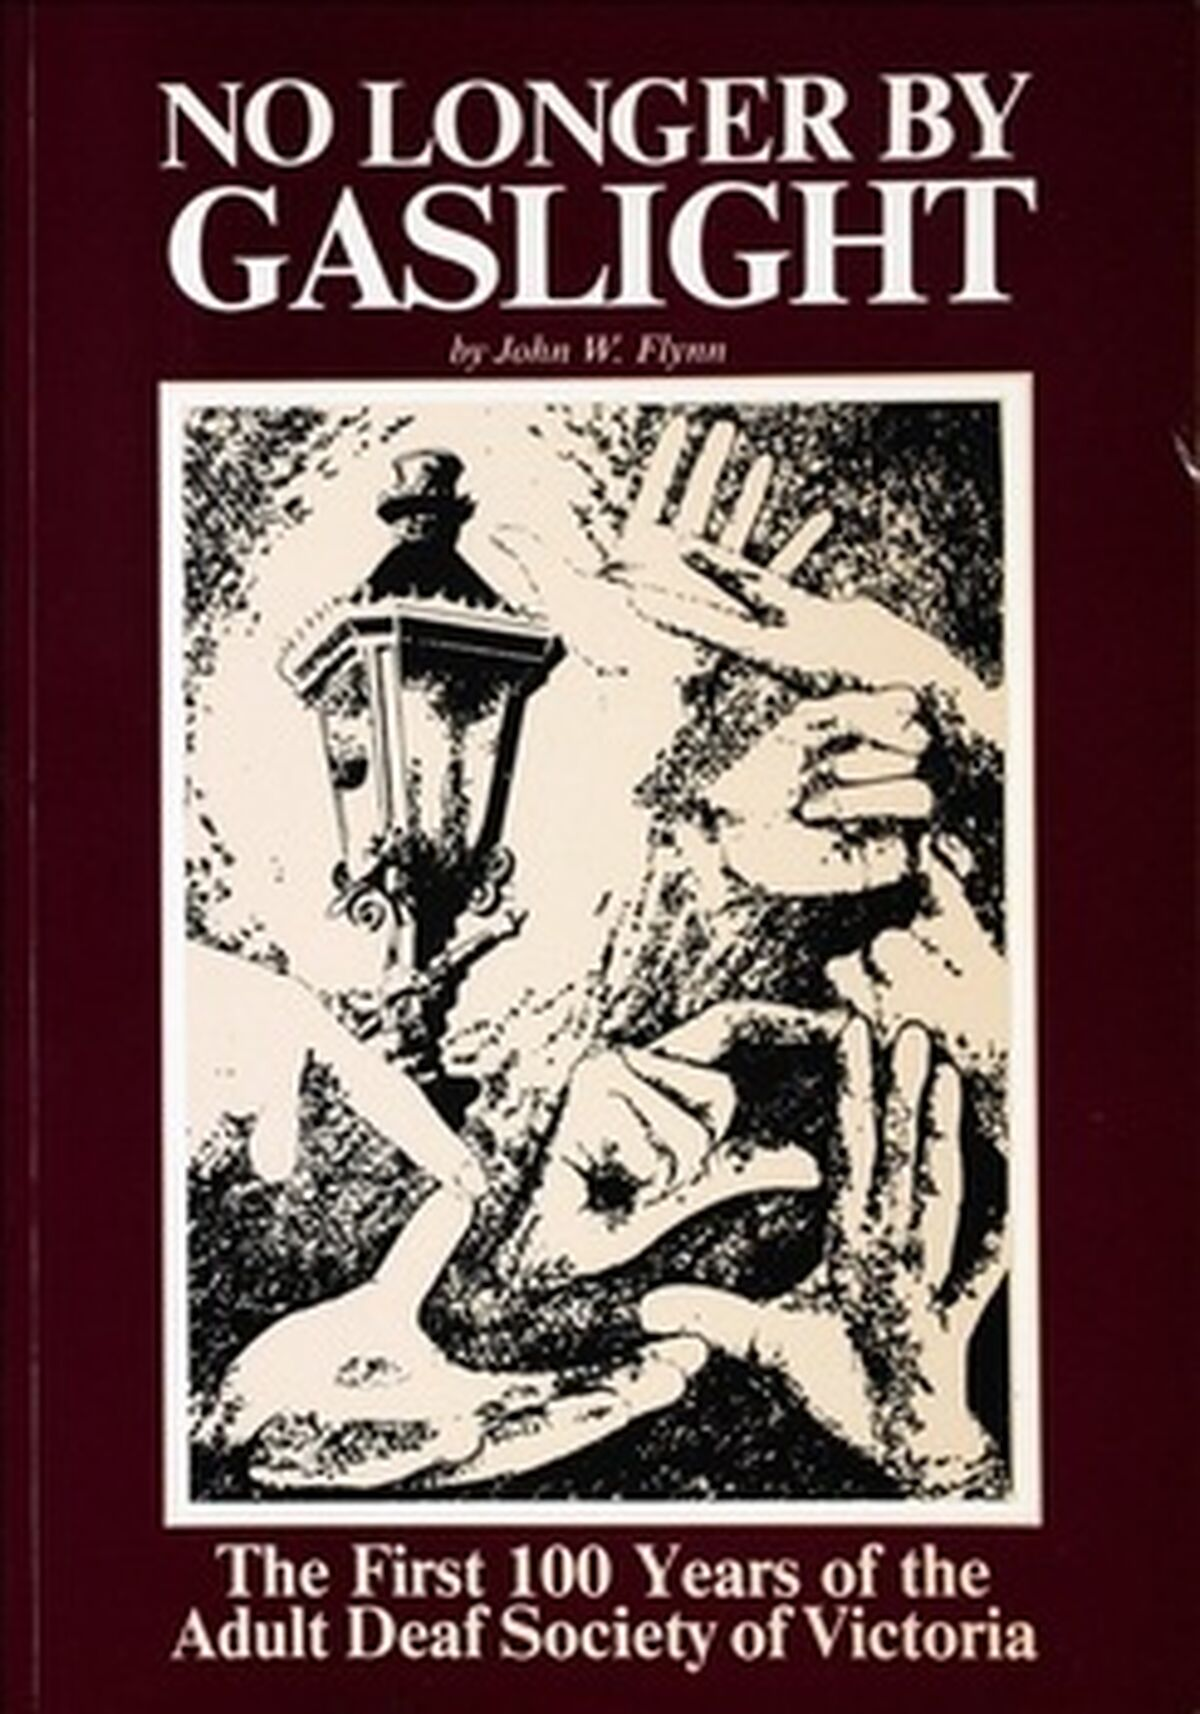 No Longer by Gaslight - The first 100 years of the Adult Deaf Society of Victoria (cover image)